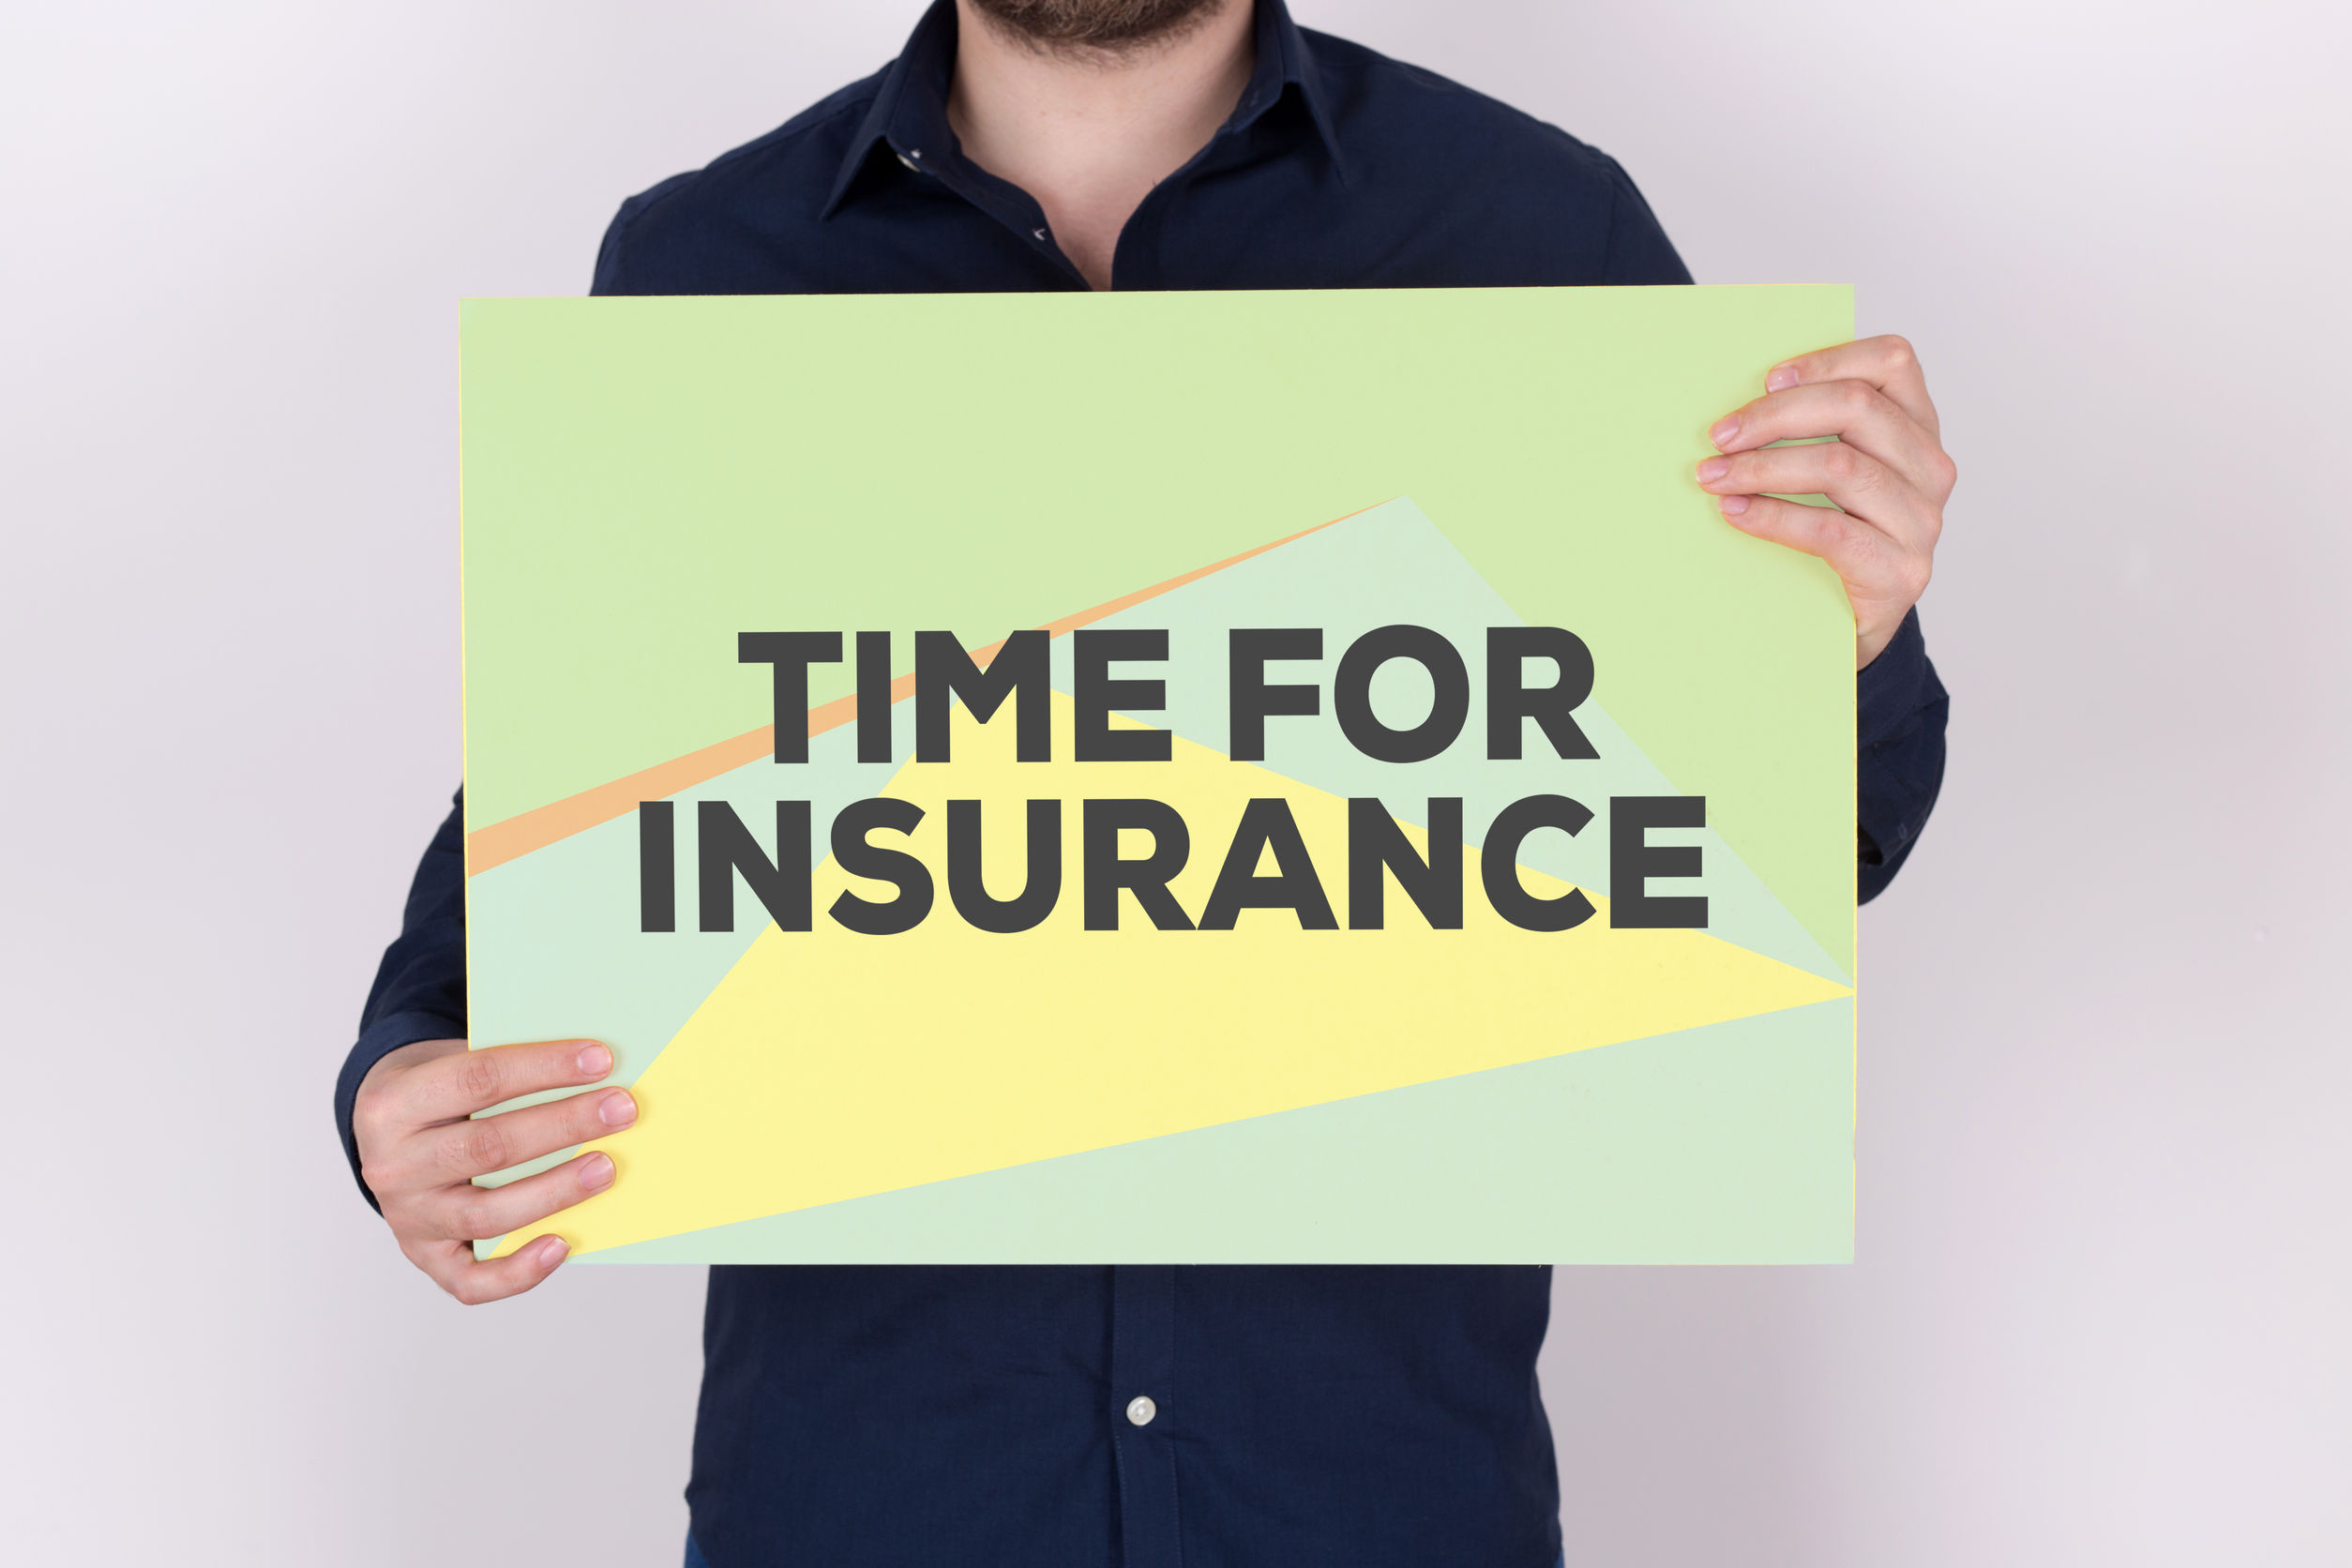 time for insurance concept